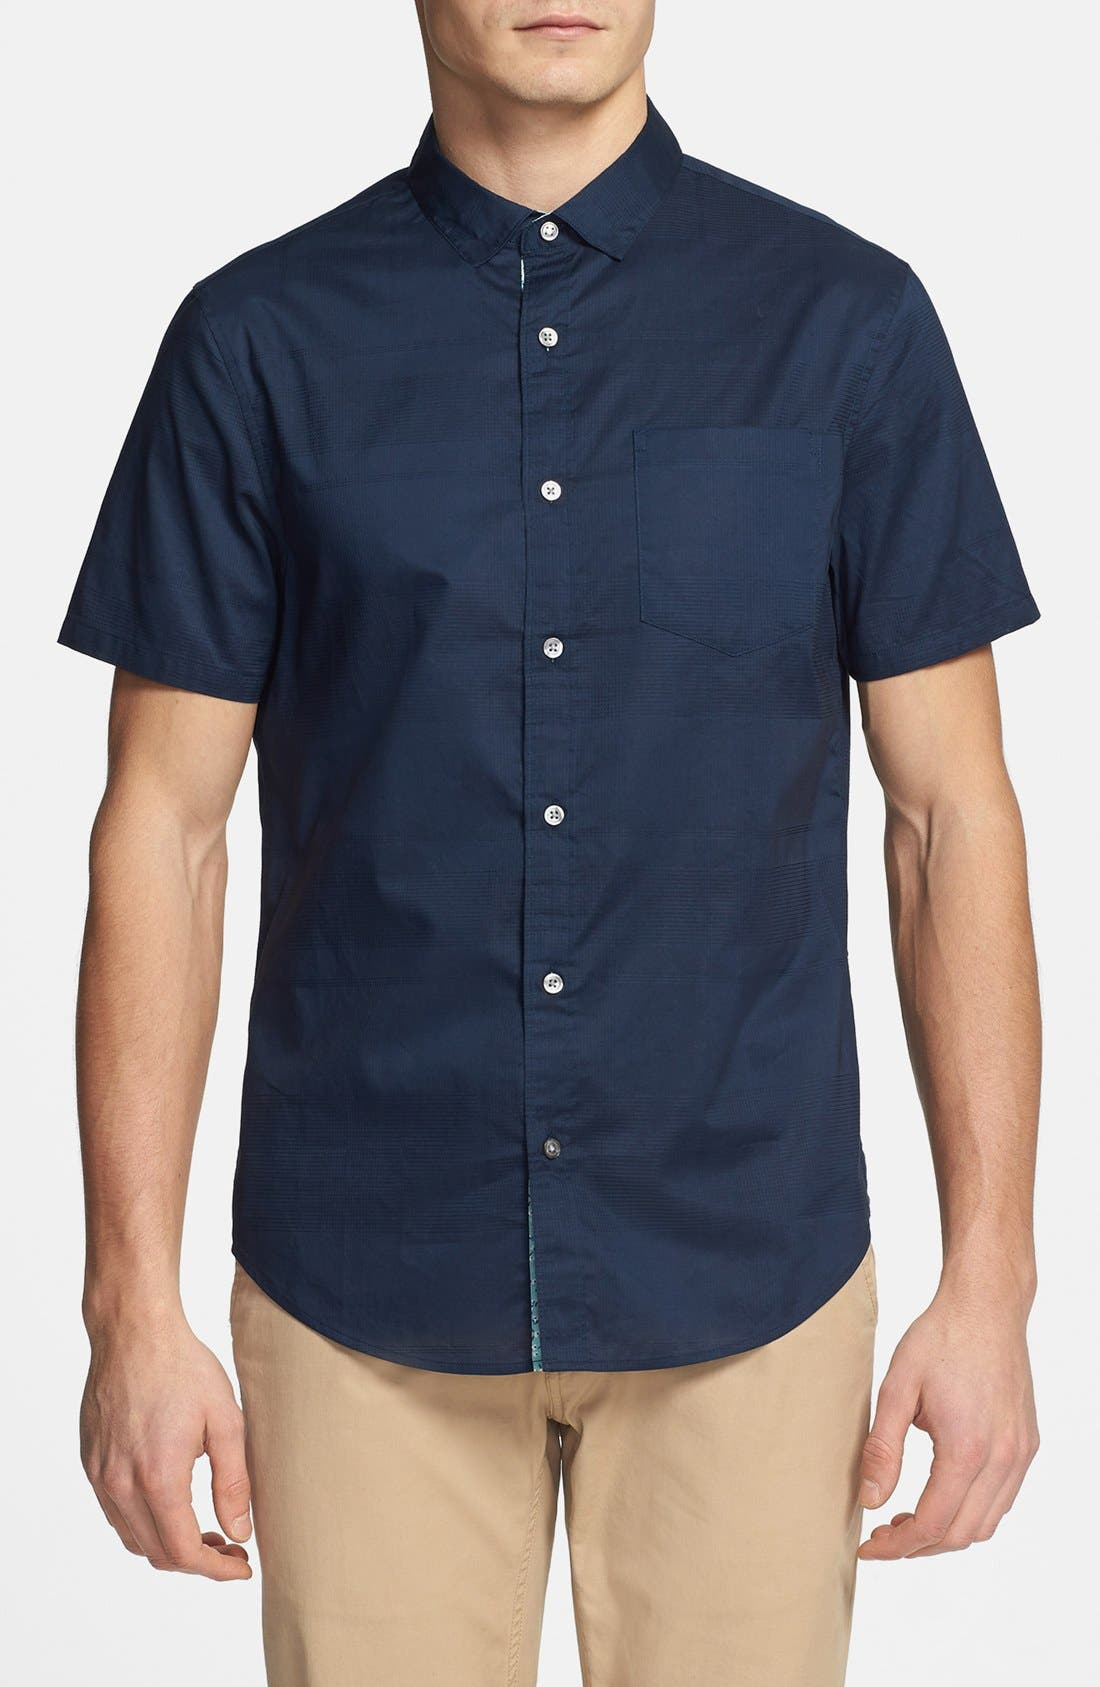 Alternate Image 1 Selected - Original Penguin Short Sleeve Cotton Sport Shirt